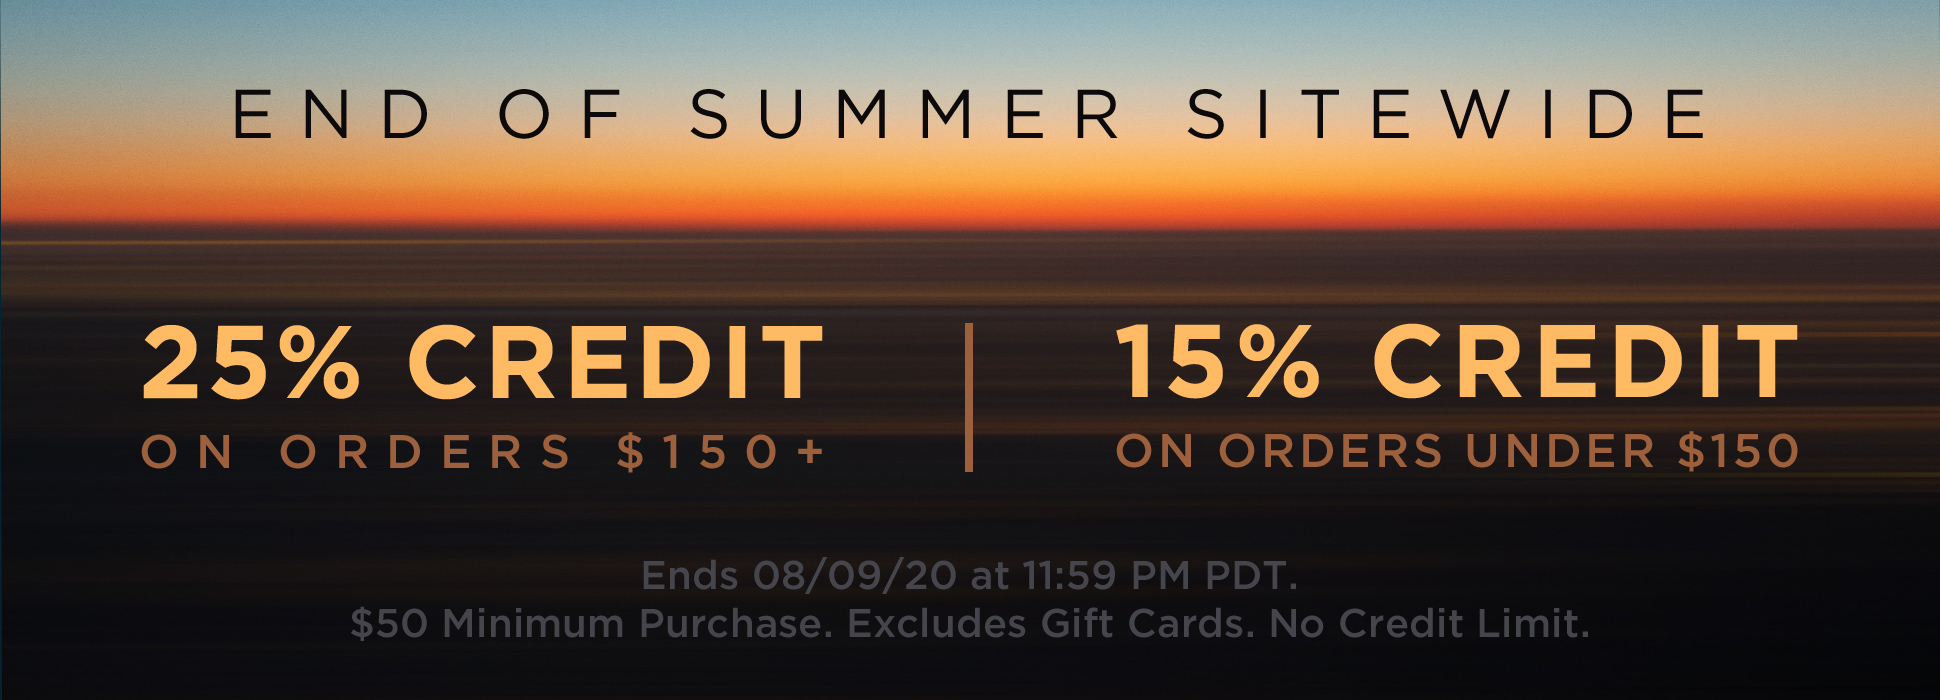 End of Summer Sitewide (Banners)